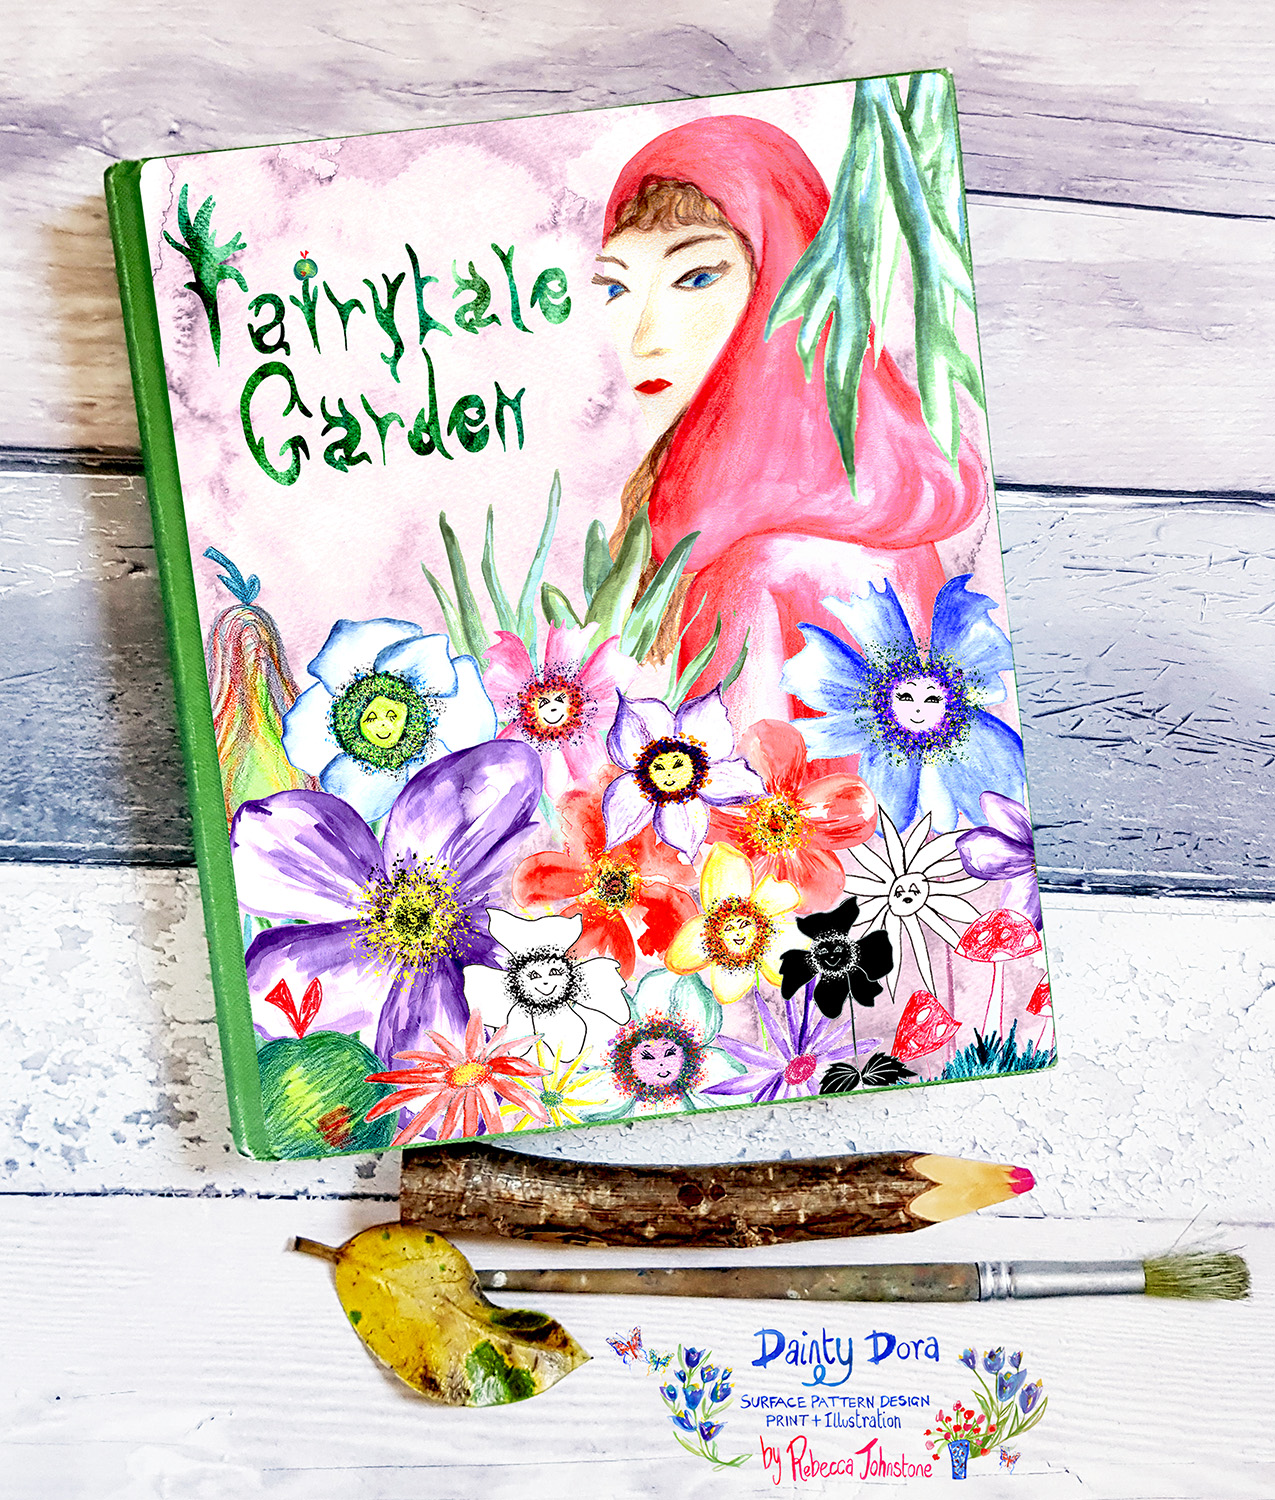 Fairytale Garden Journal Cover Concept for the Global Talent Search 2018, by Rebecca Johnstone